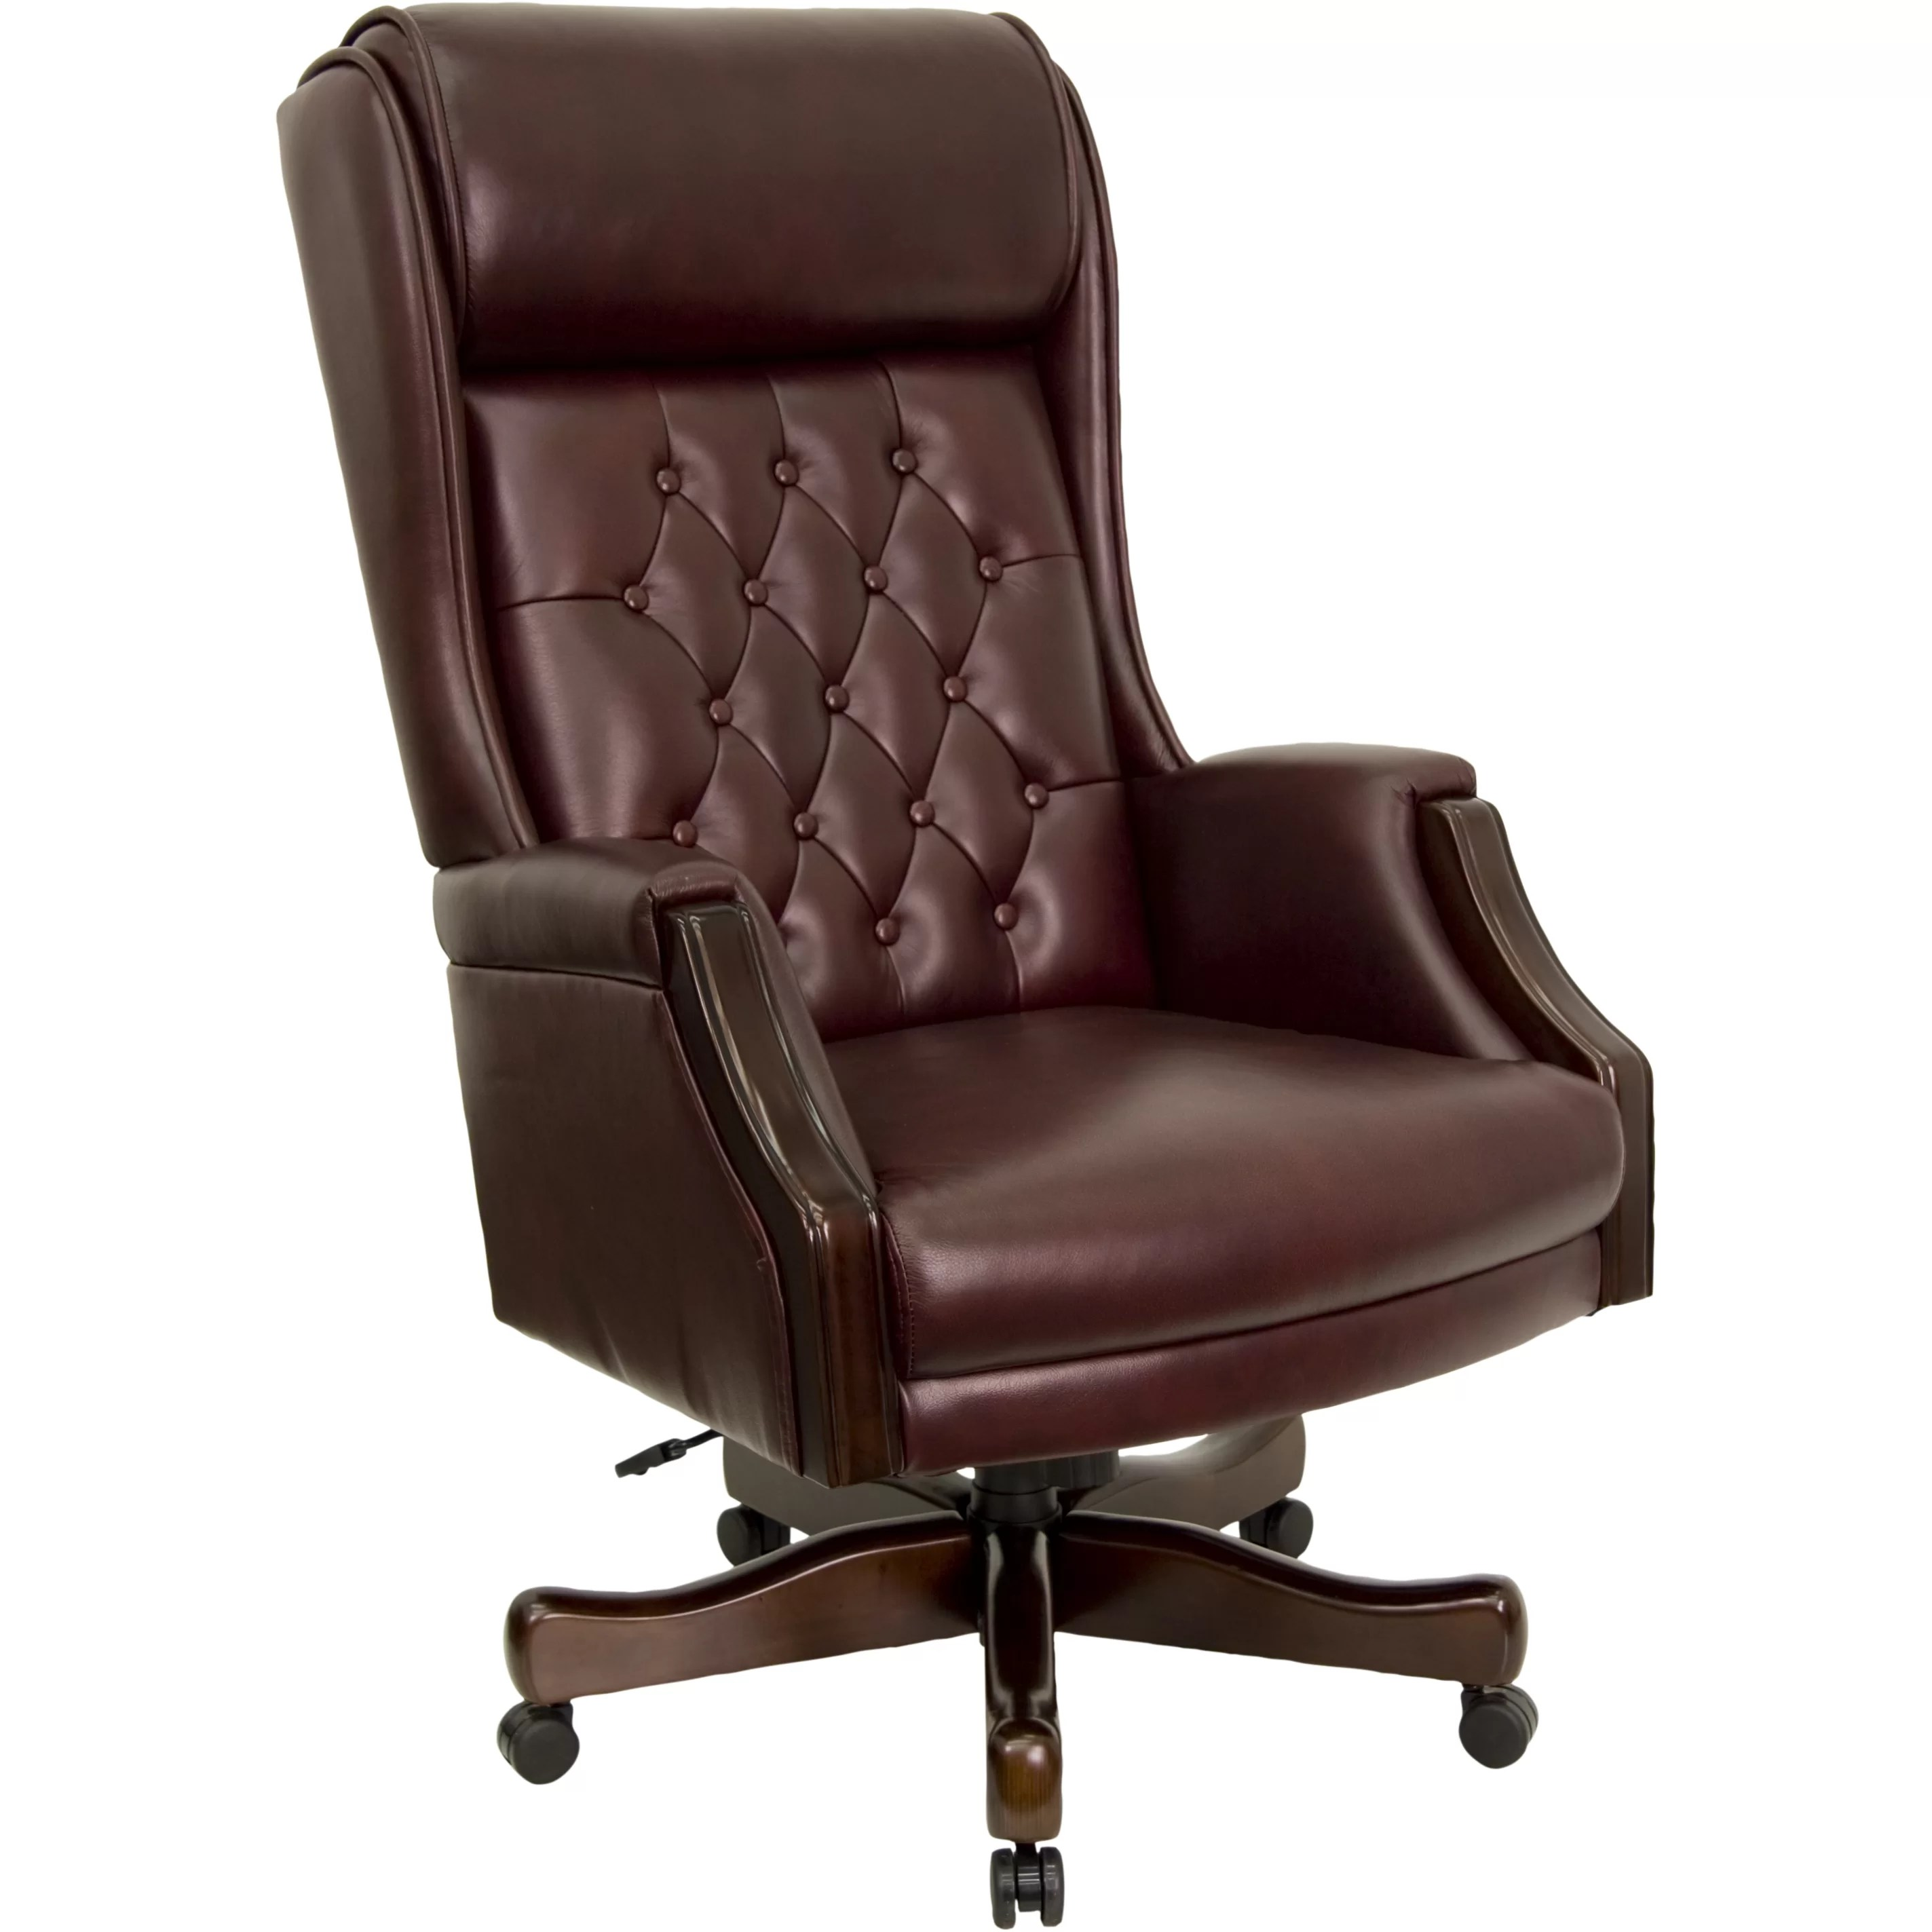 Executive Chair Flash Furniture High Back Leather Executive Office Chair